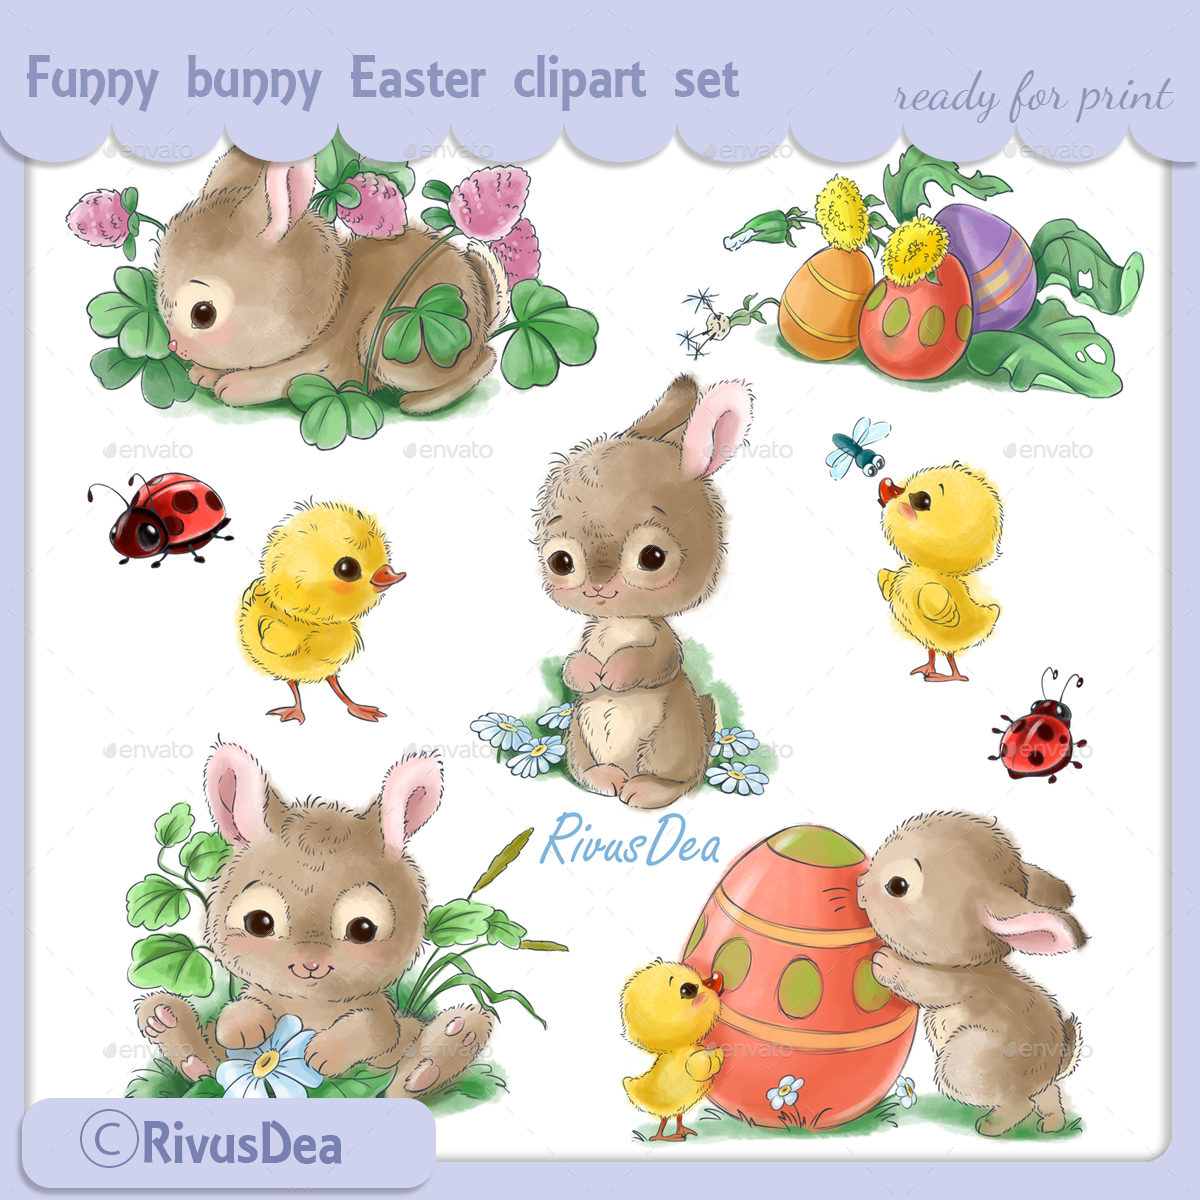 Cute Bunny Easter Sticker Clipart Set in Vintage Watercolor Style.